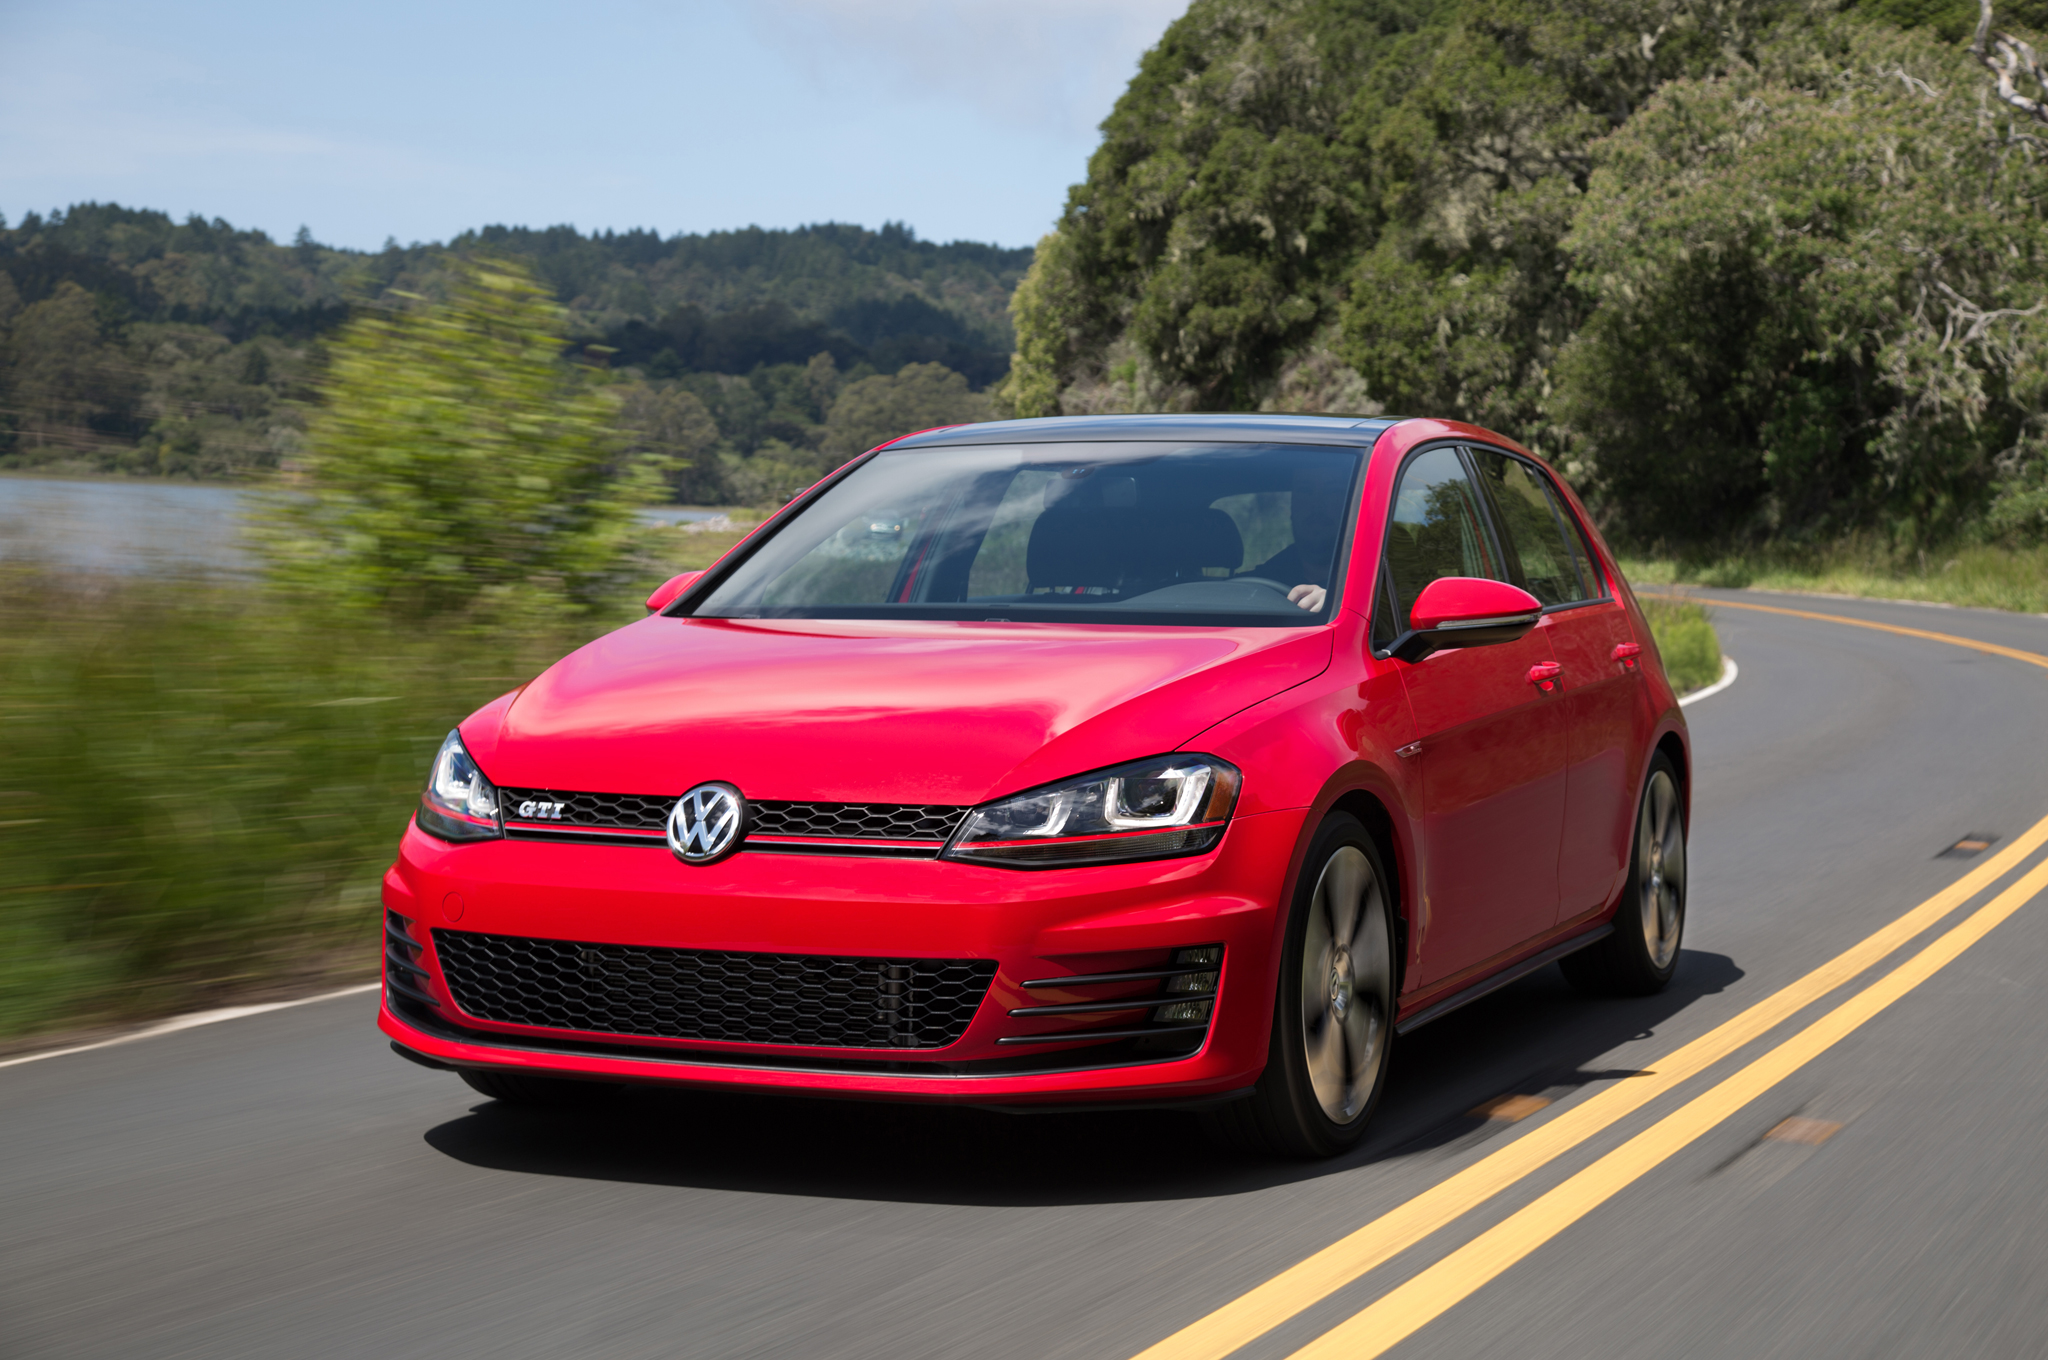 2015 Volkswagen Golf Gti Performance Test (Photo 52 of 55)